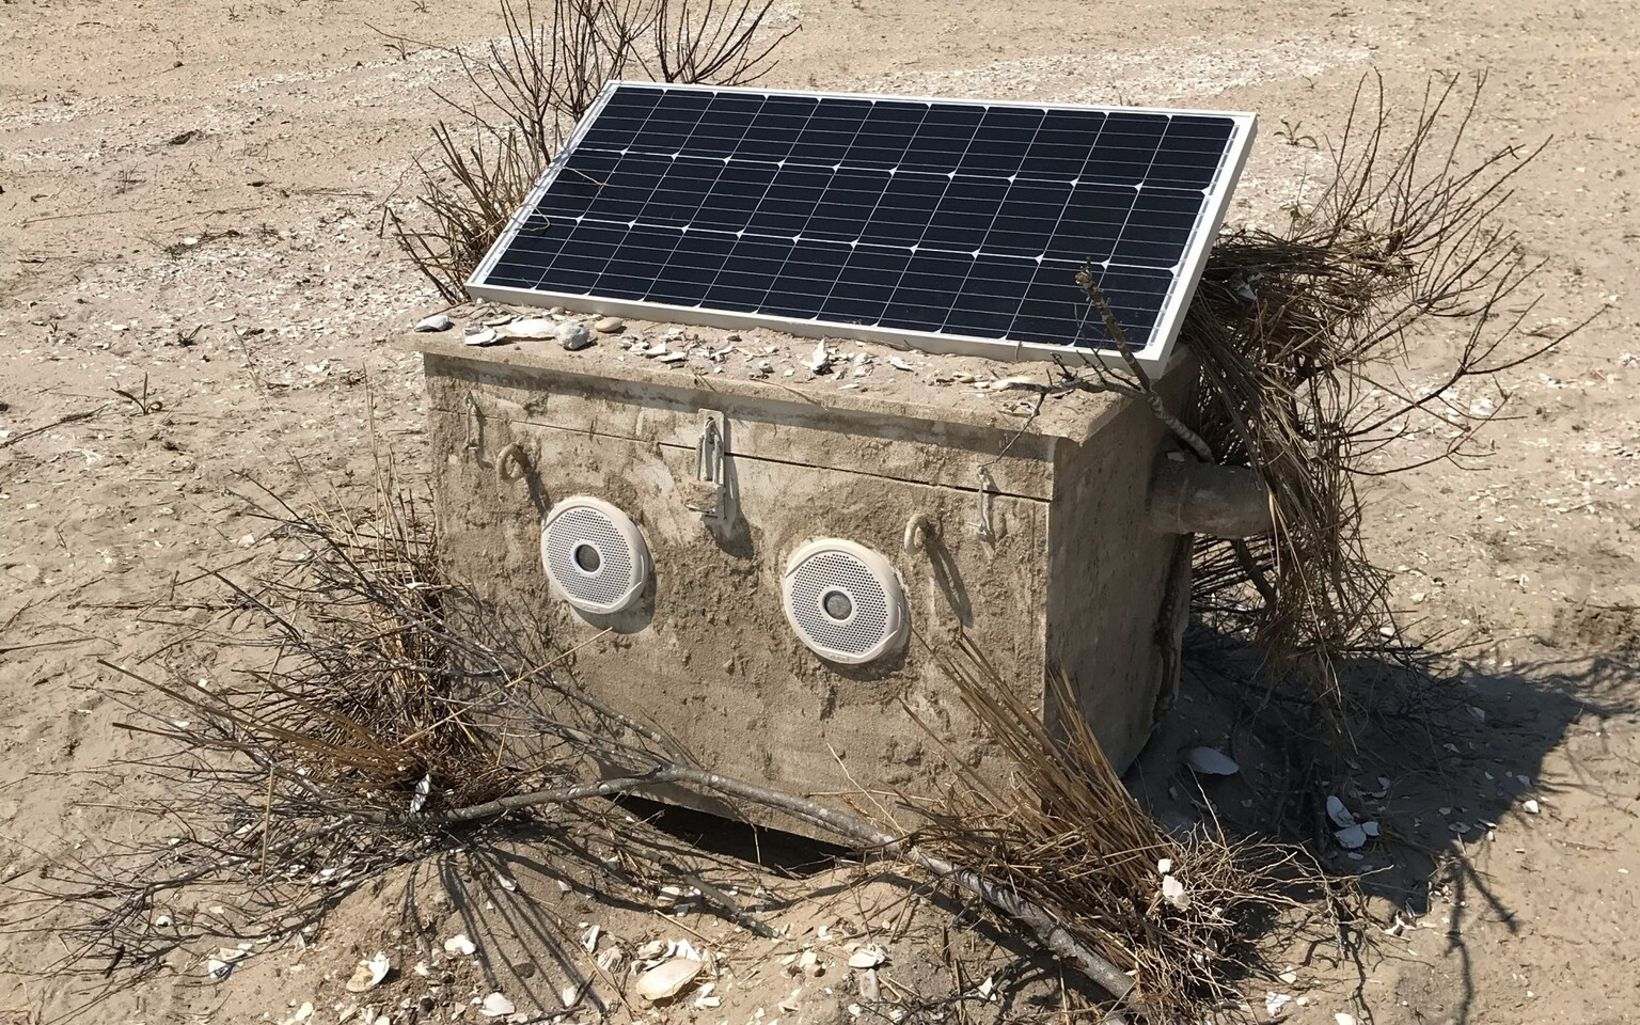 This custom, solar-powered box emits piping plover calls, to lure the birds to nest in the protected area.